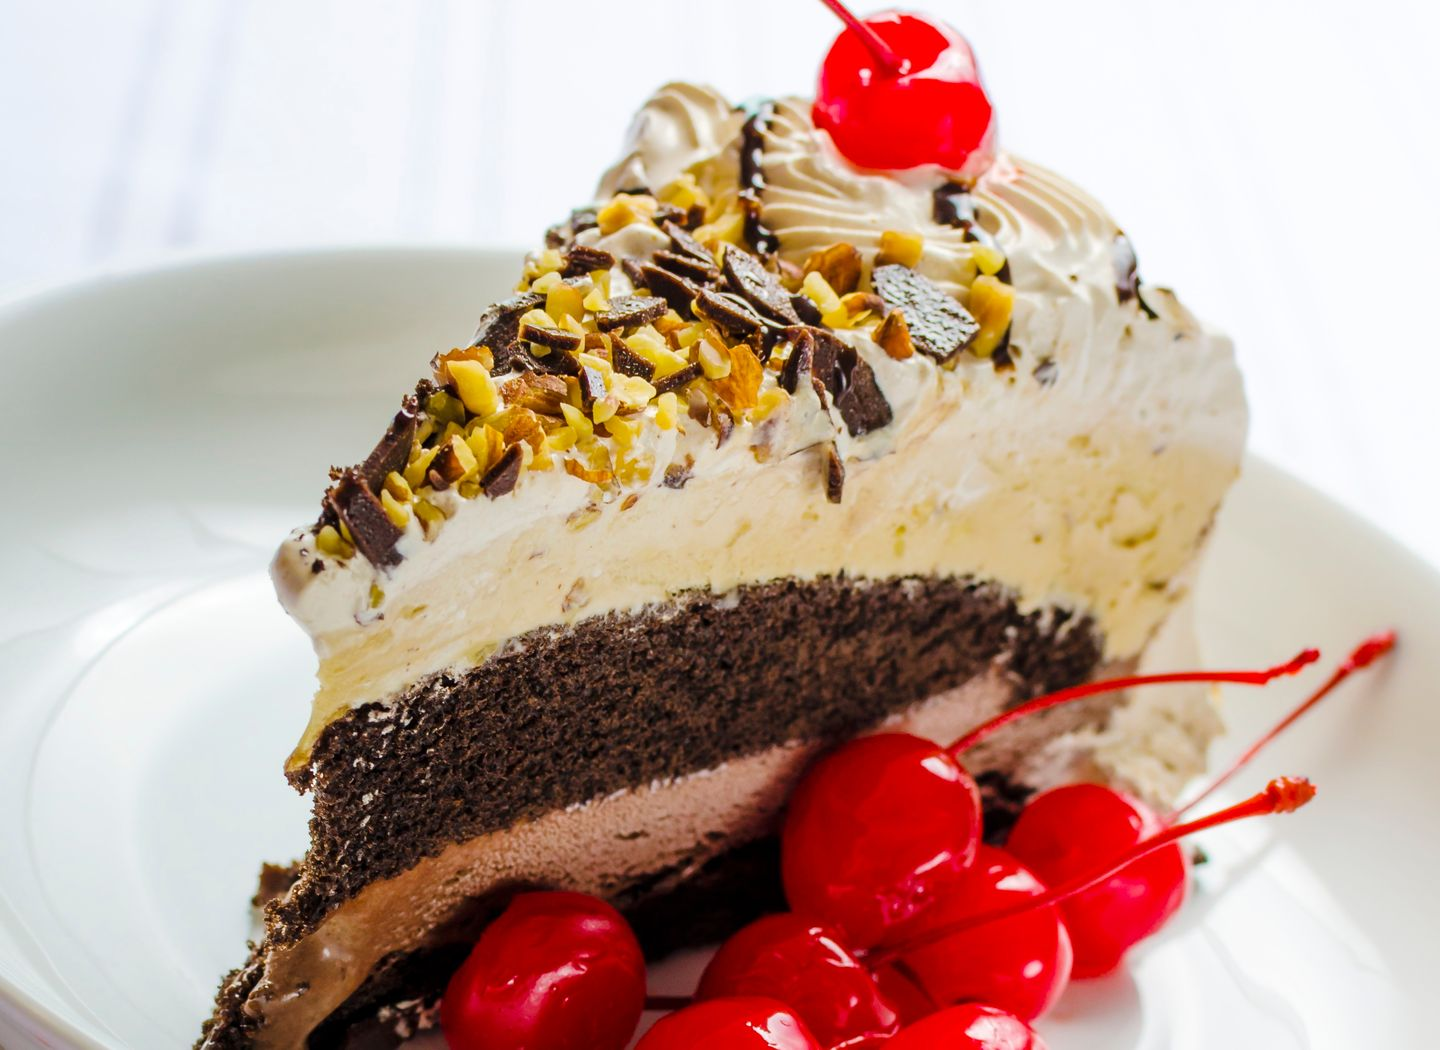 High protein CBD ice cream cake dessert recipe